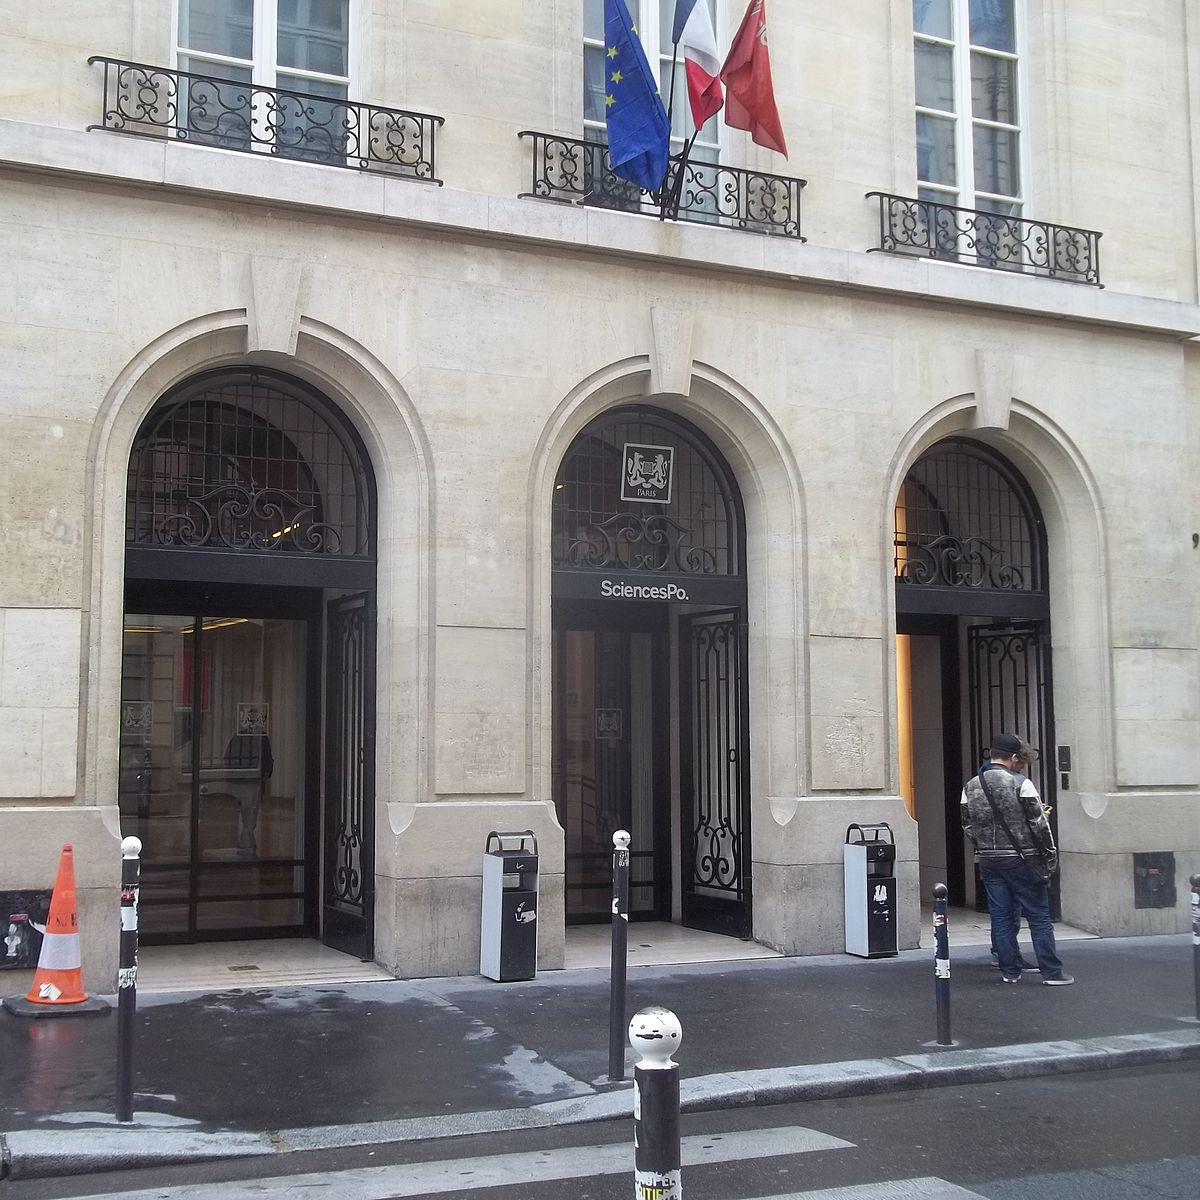 Sciences po wikidata for 9 rue de la chaise sciences po